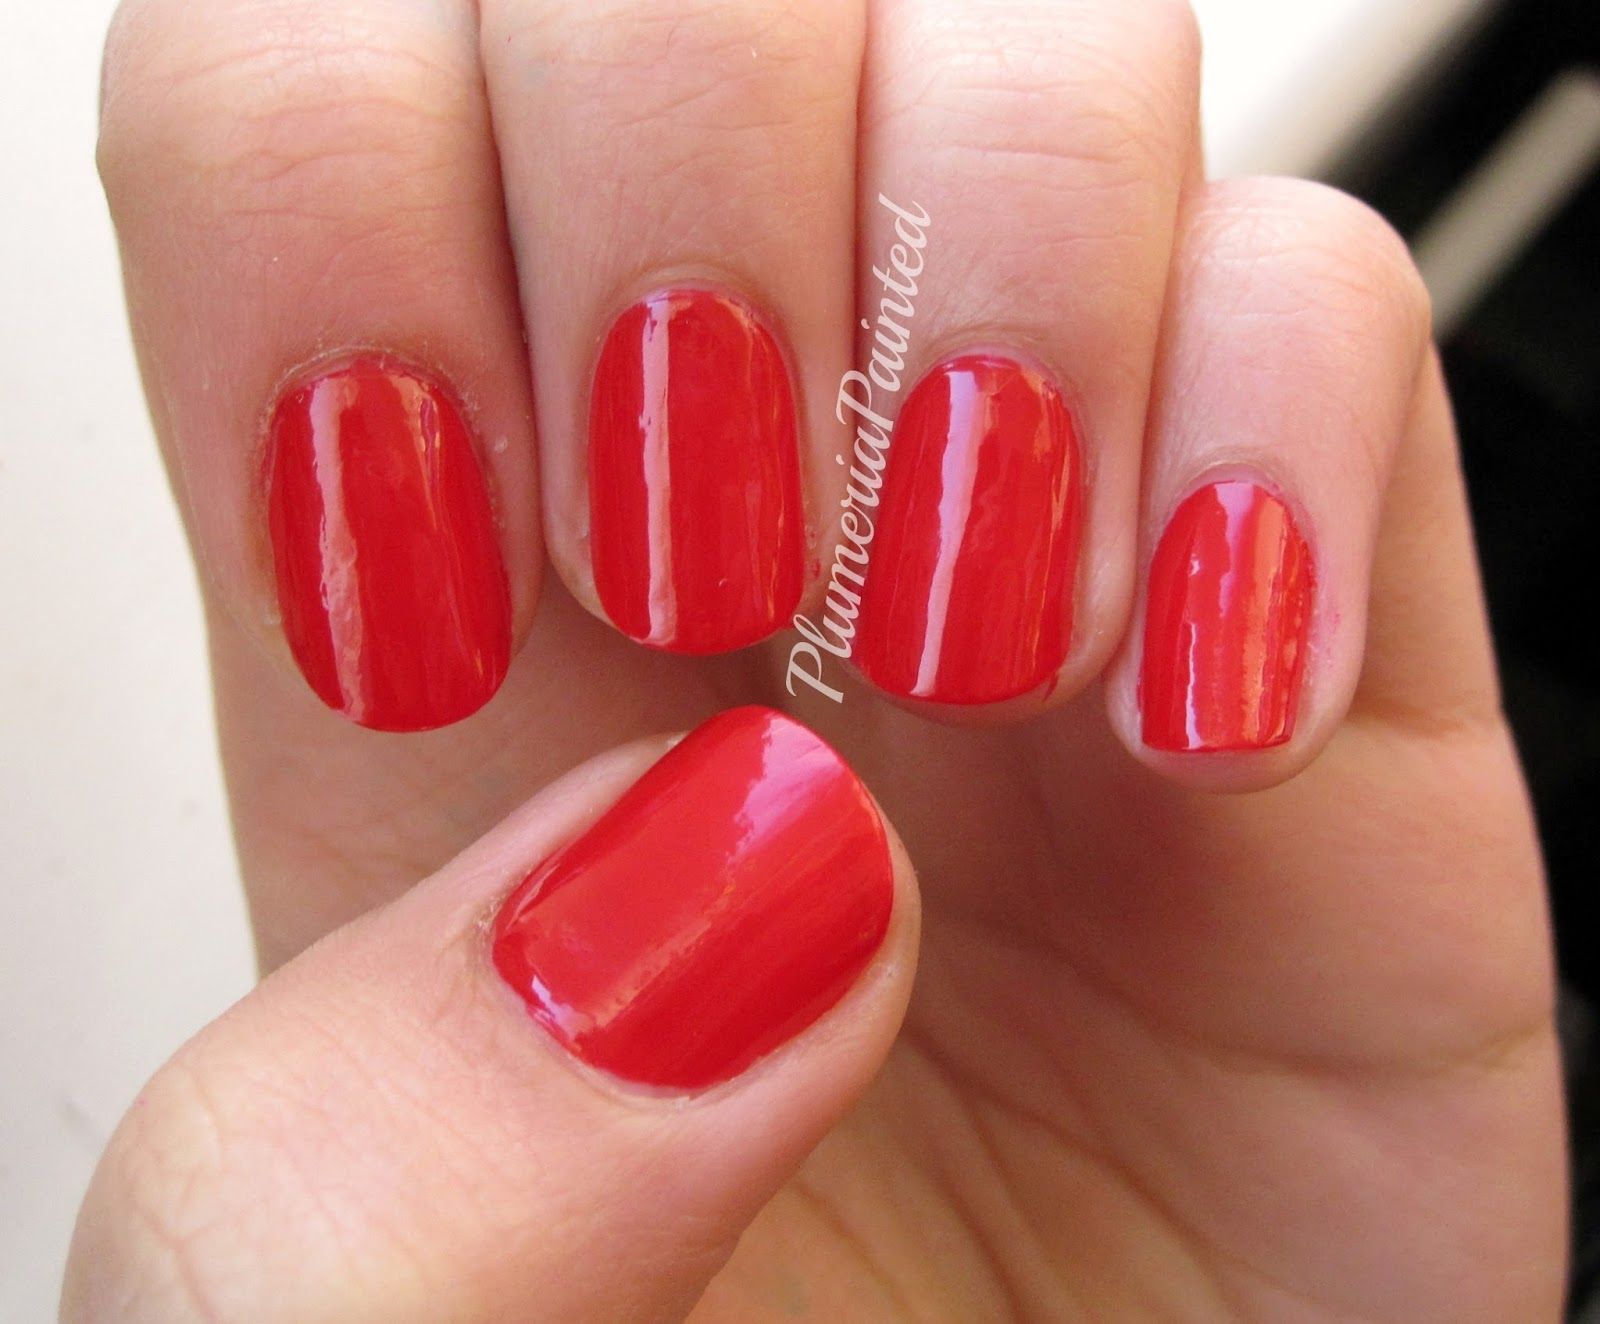 To Be Honest It Does Look Nice I Think Red Suits Me Much Better Than Other Colours But Dark Heart Is Still Just A Creme Polish Do You Agree